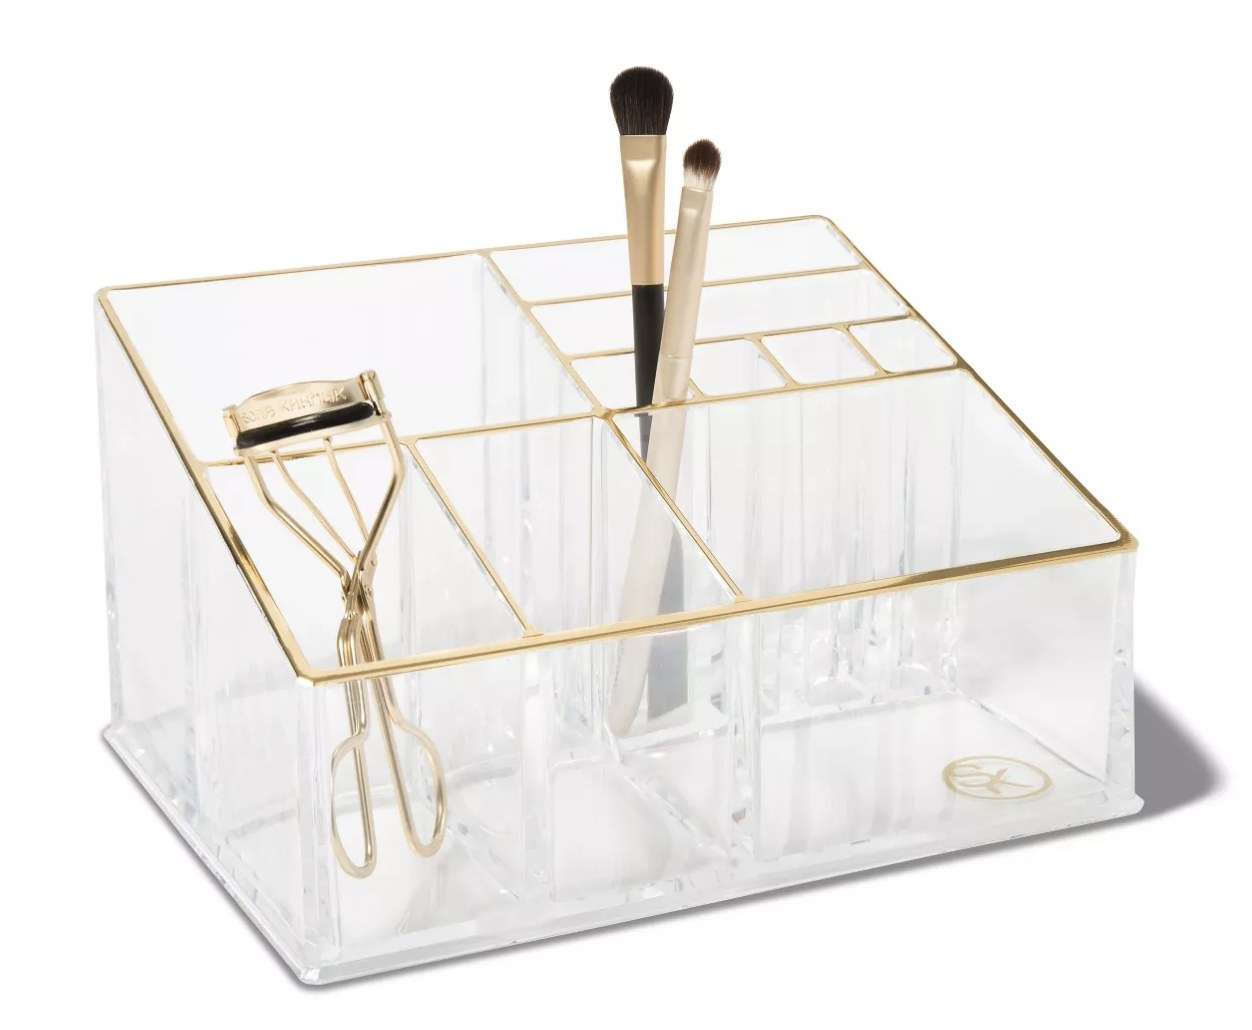 the clear organizer with gold edges and 10 sections in different sizes for beauty tools